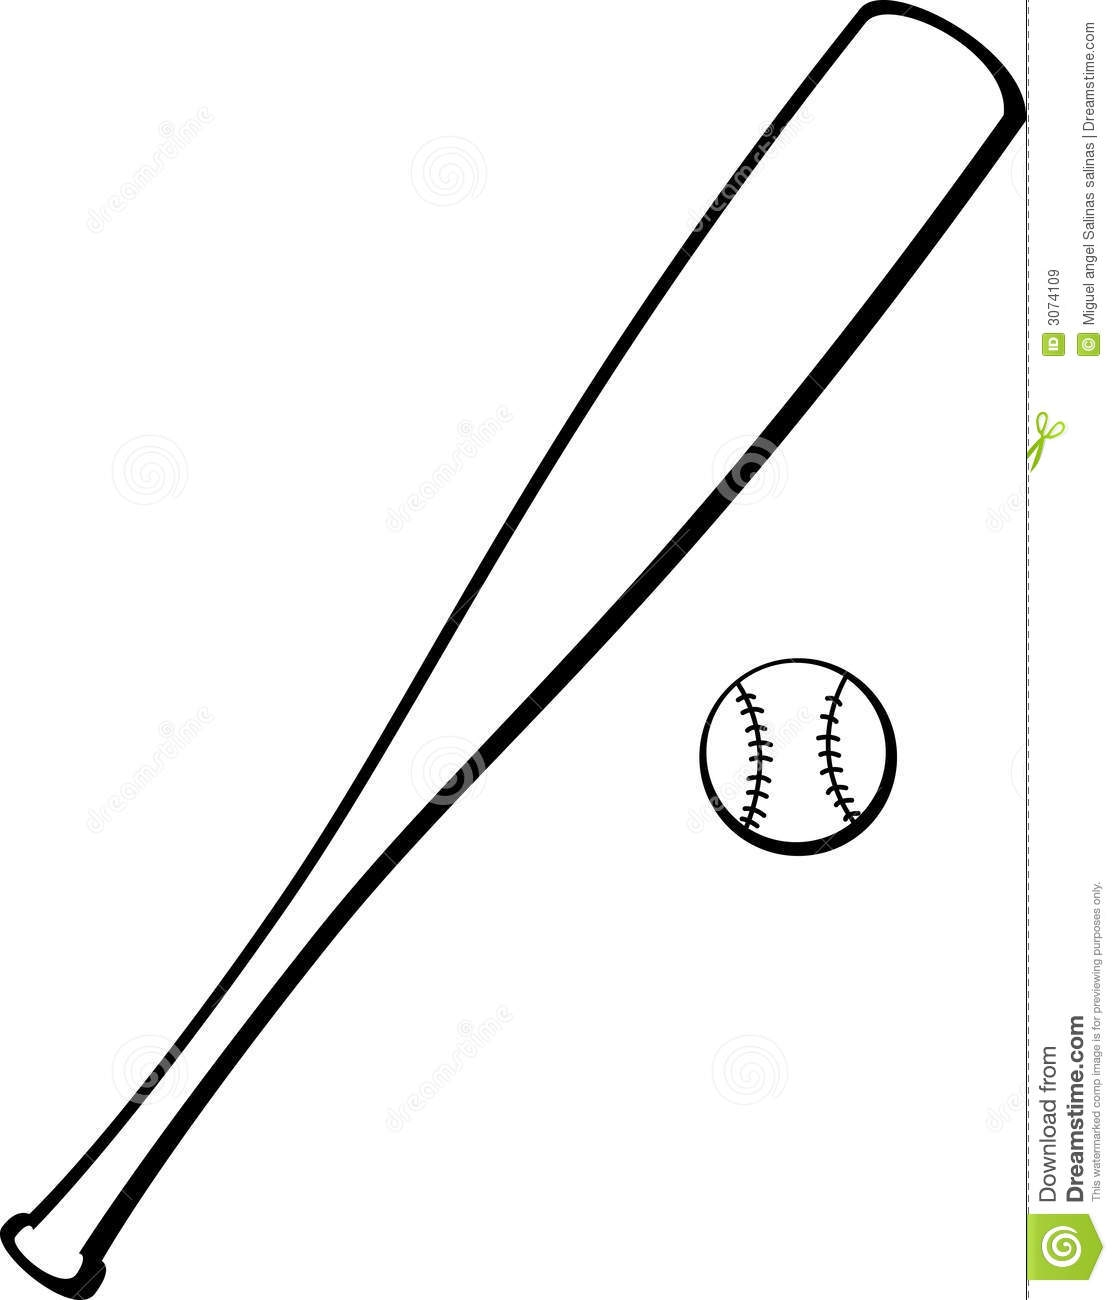 Baseball bat drawing. And ball clipart free